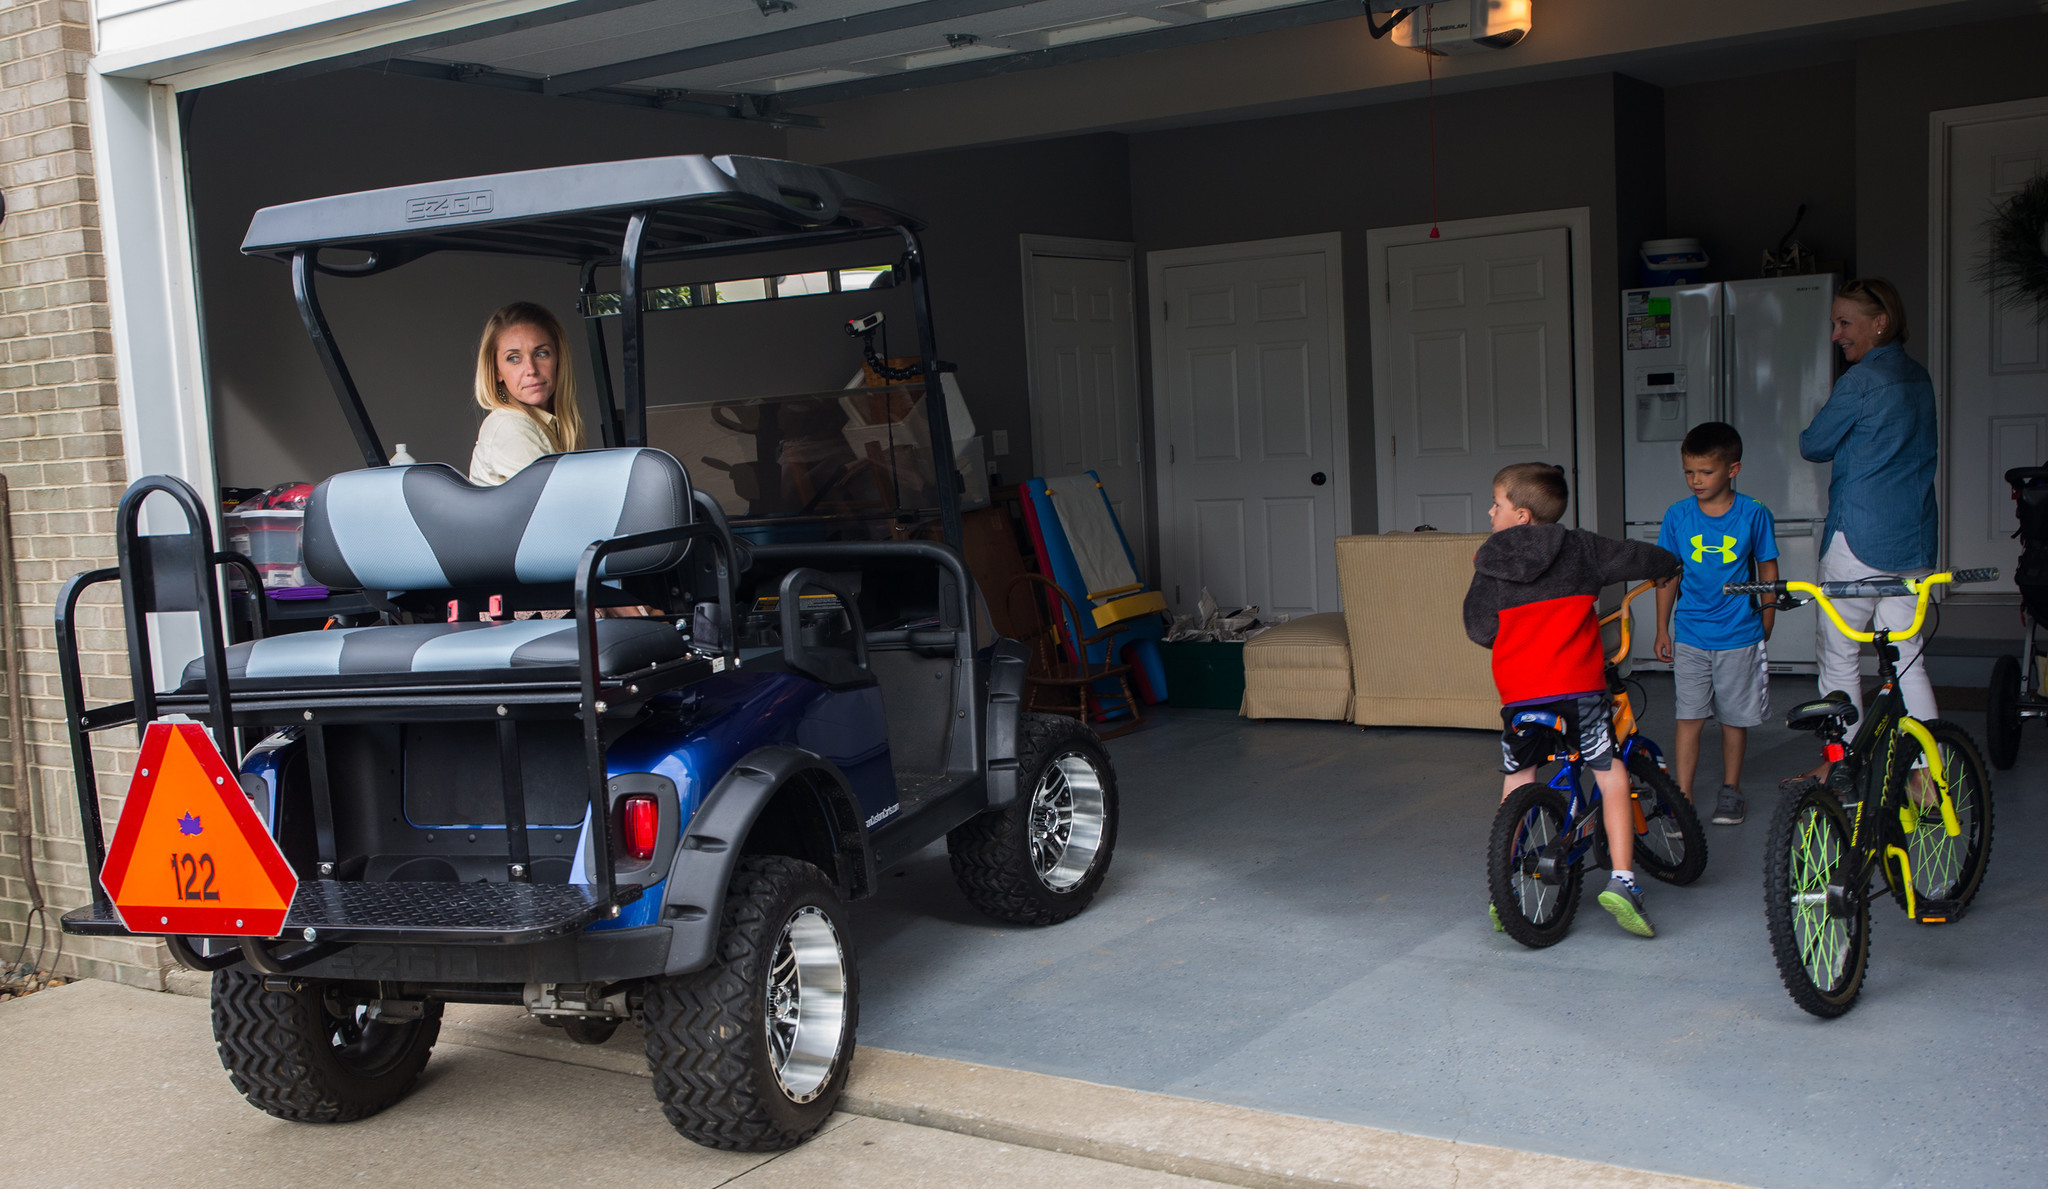 Small Illinois towns drive golf cart pority, but safety a ... on